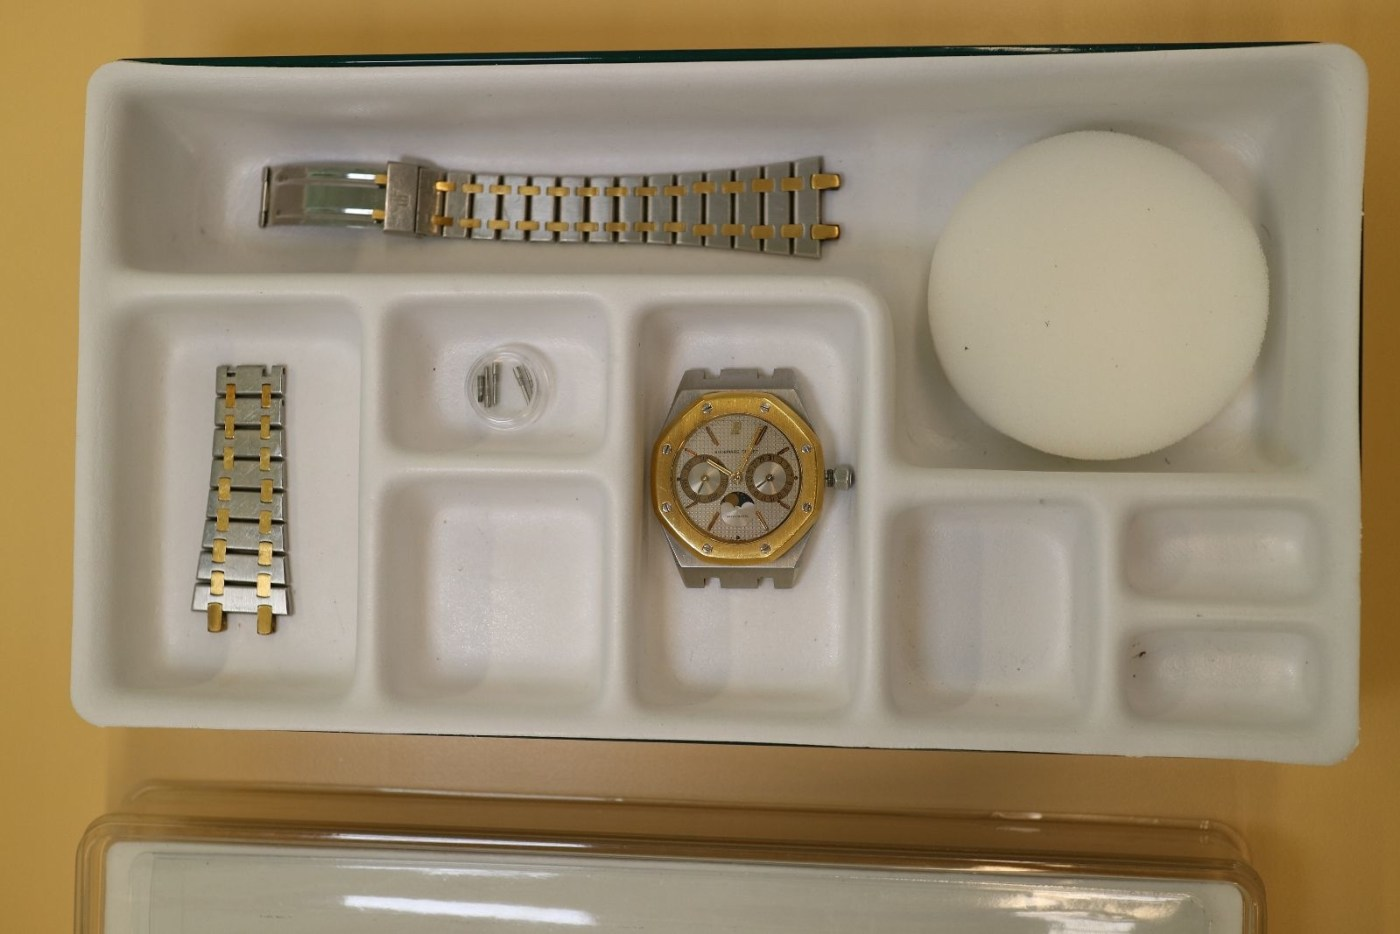 Bracelet and case are separated prior to estimating